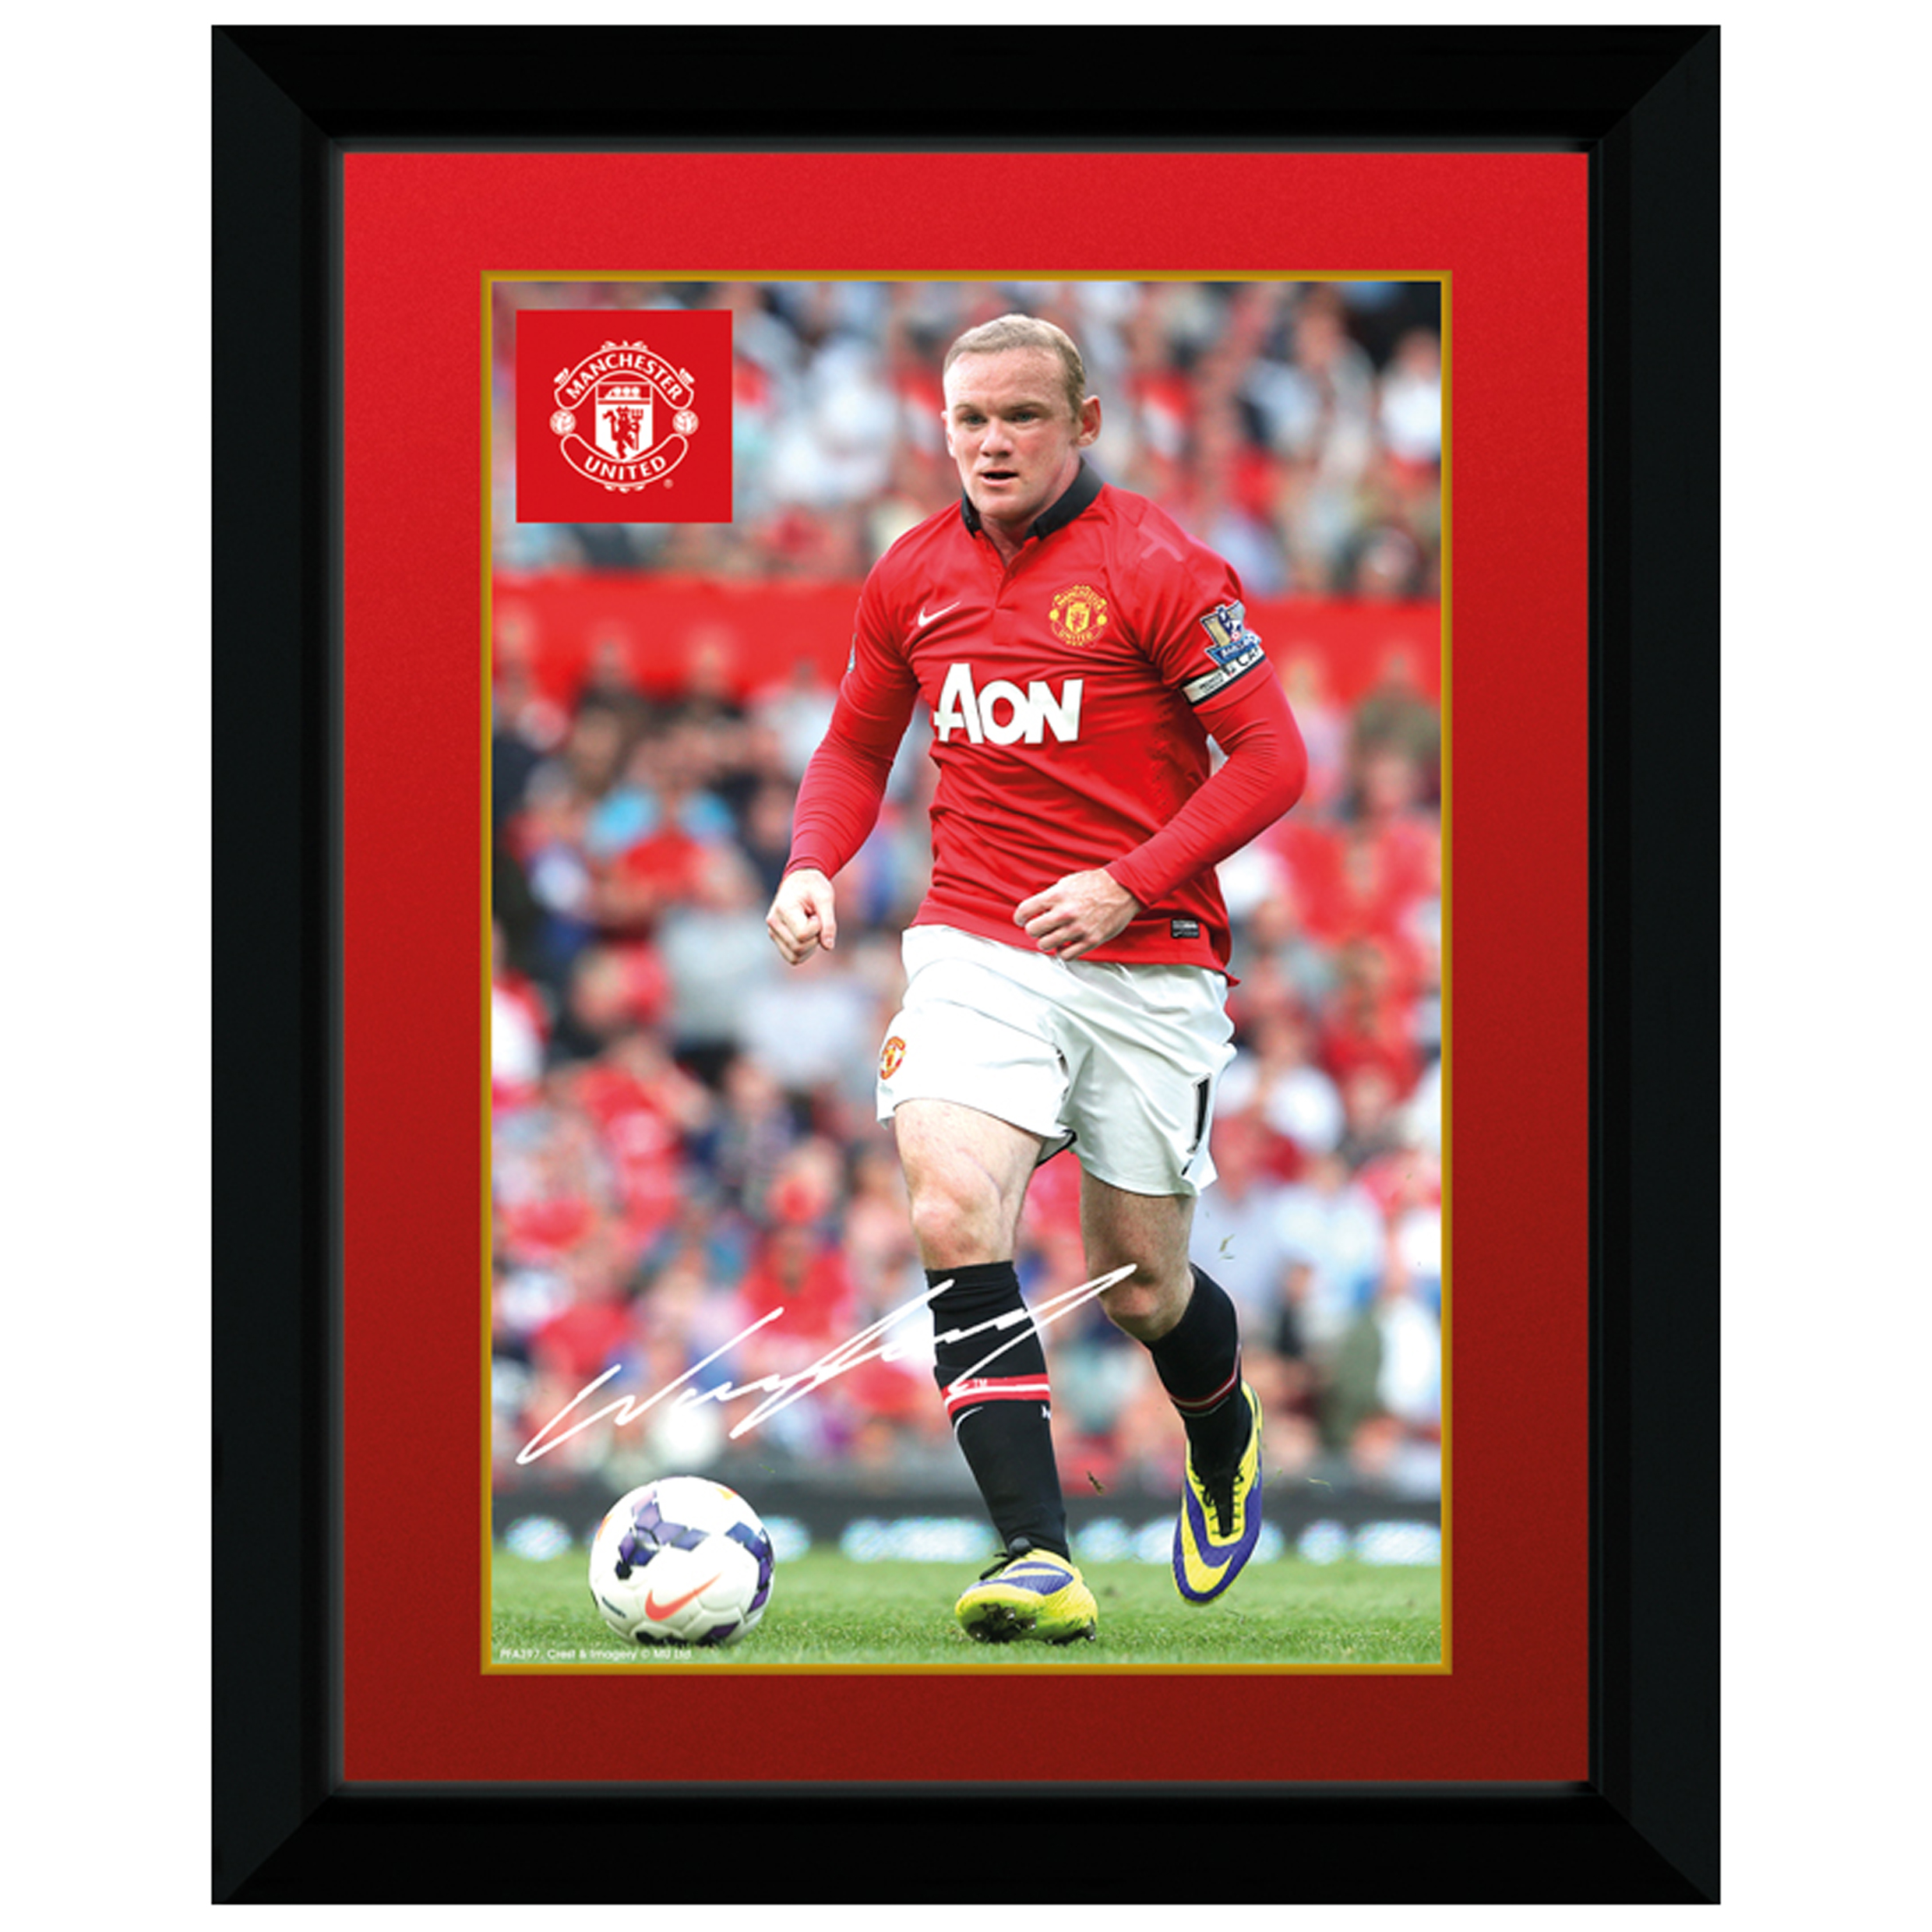 Manchester United 2013/14 Rooney Framed Print - 8 x 6 Inch